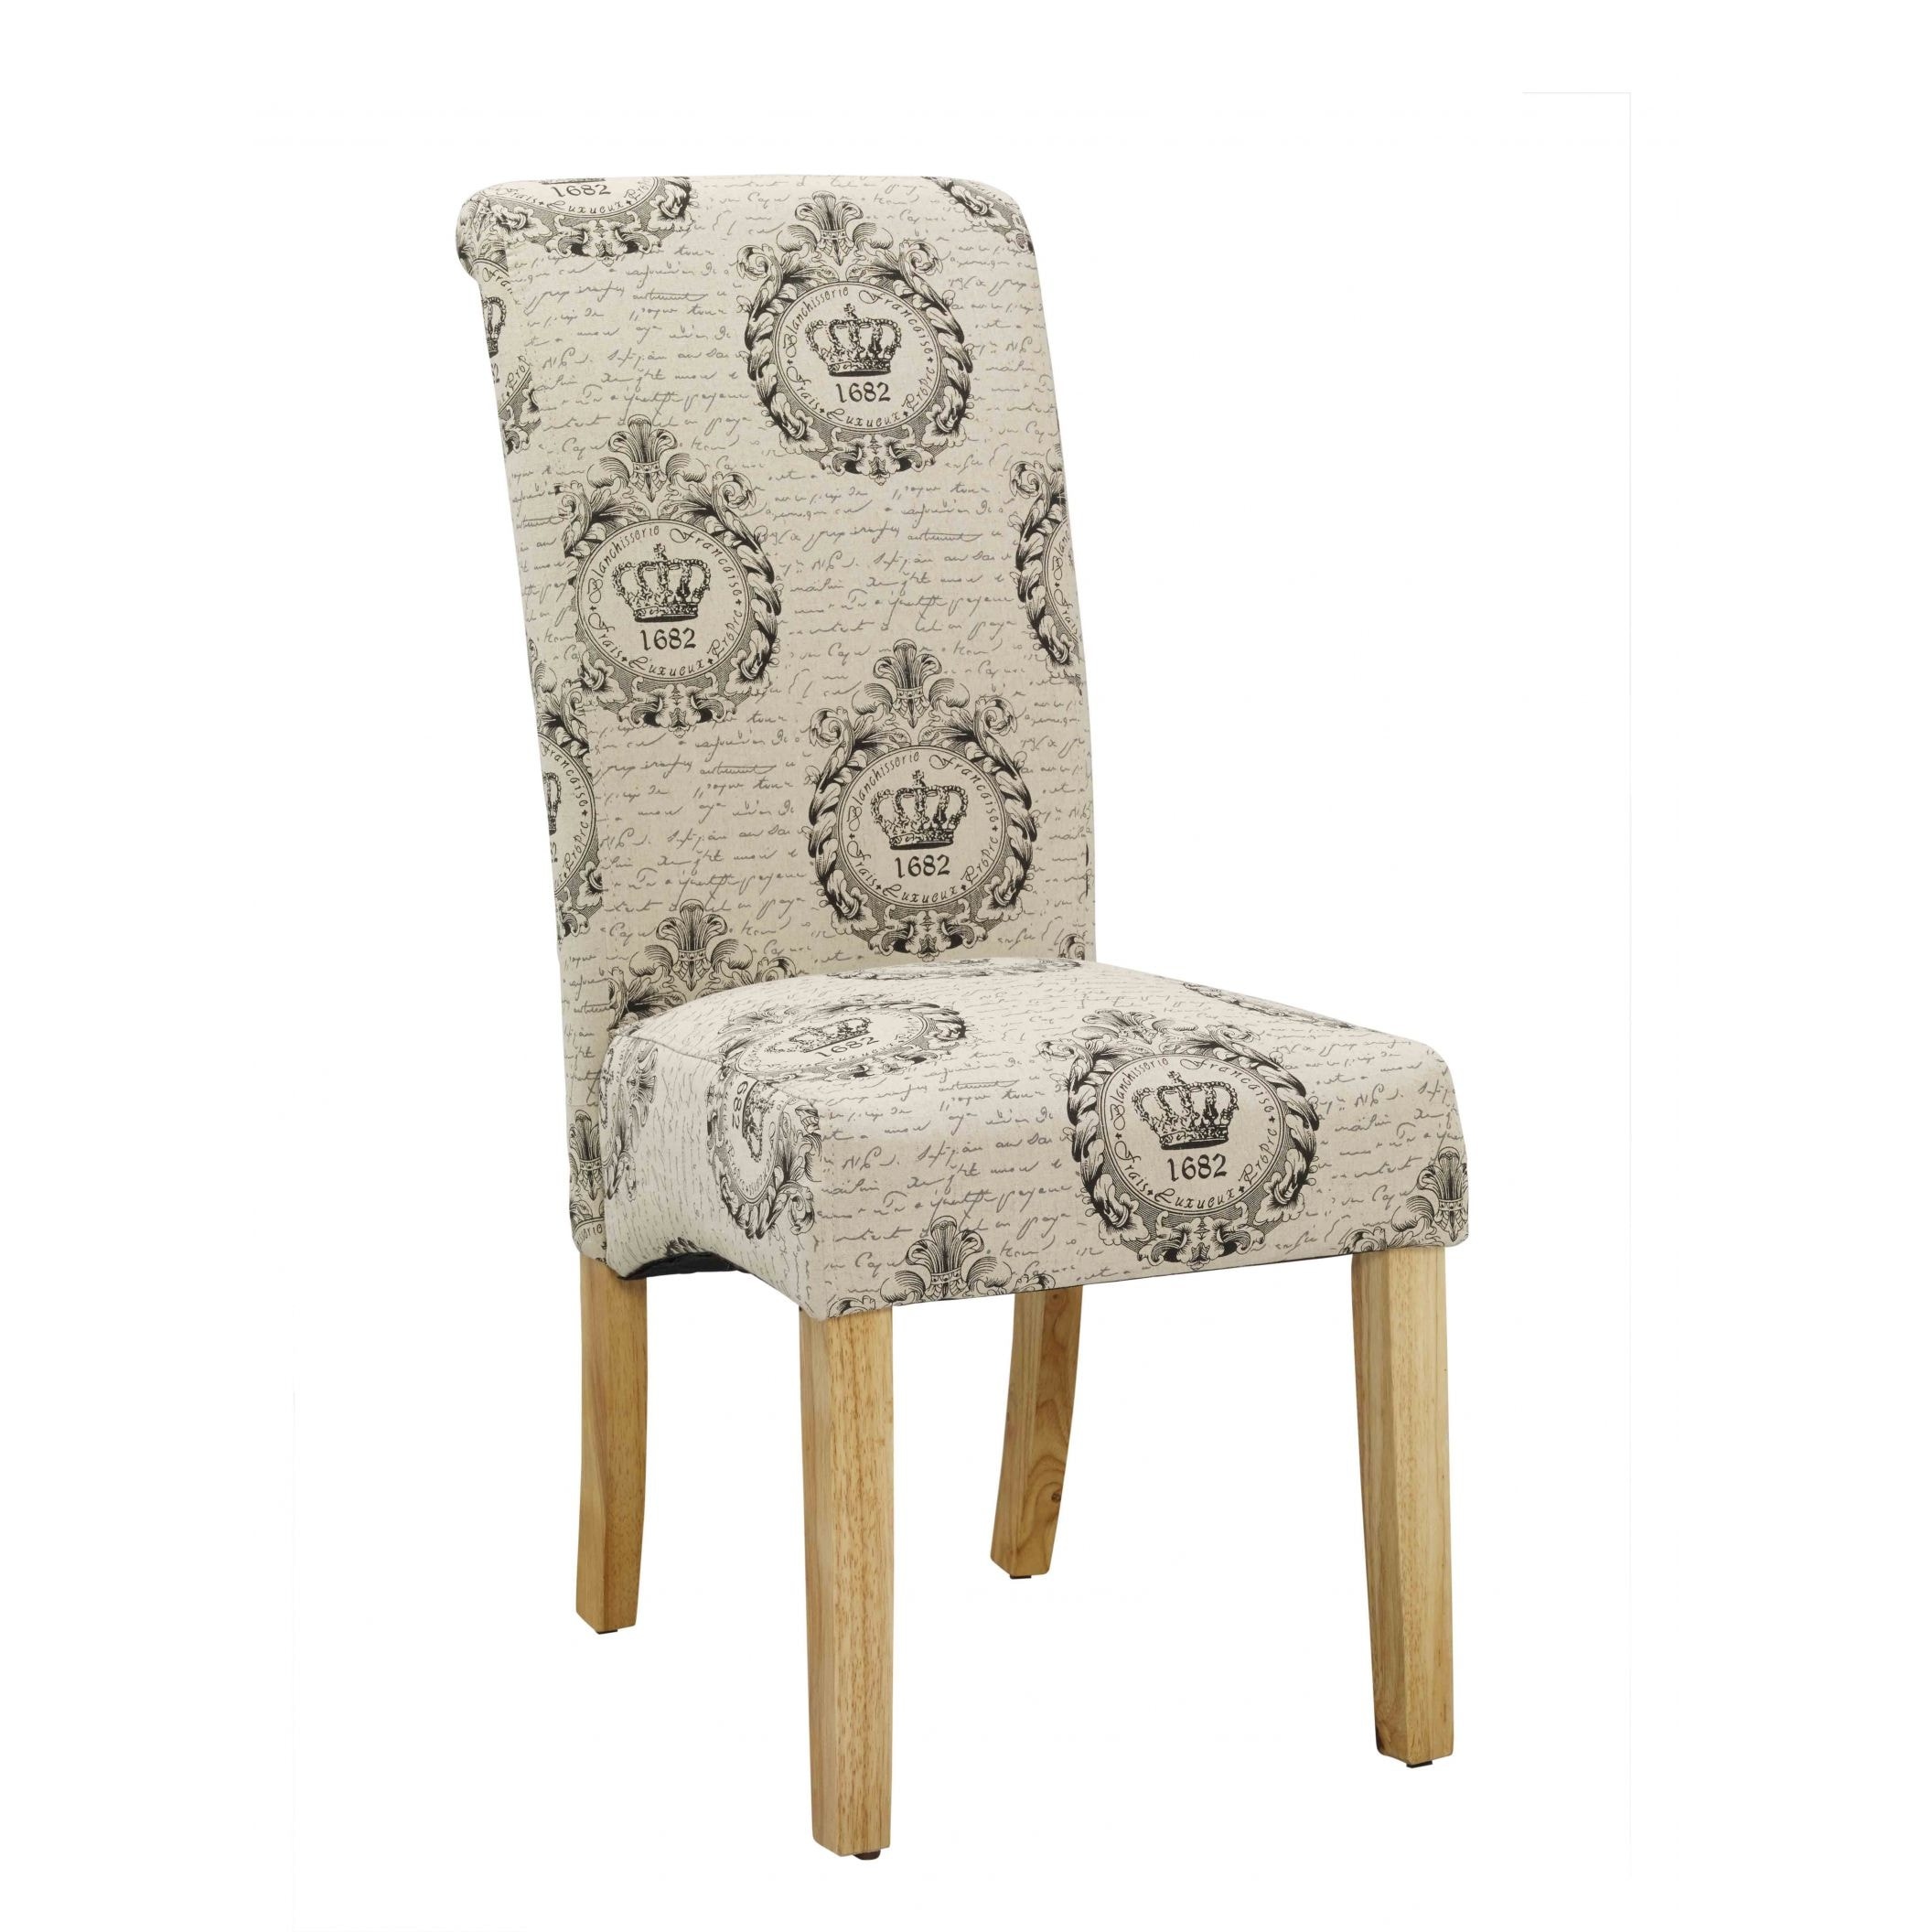 Kensington dining chair modern furniture collection